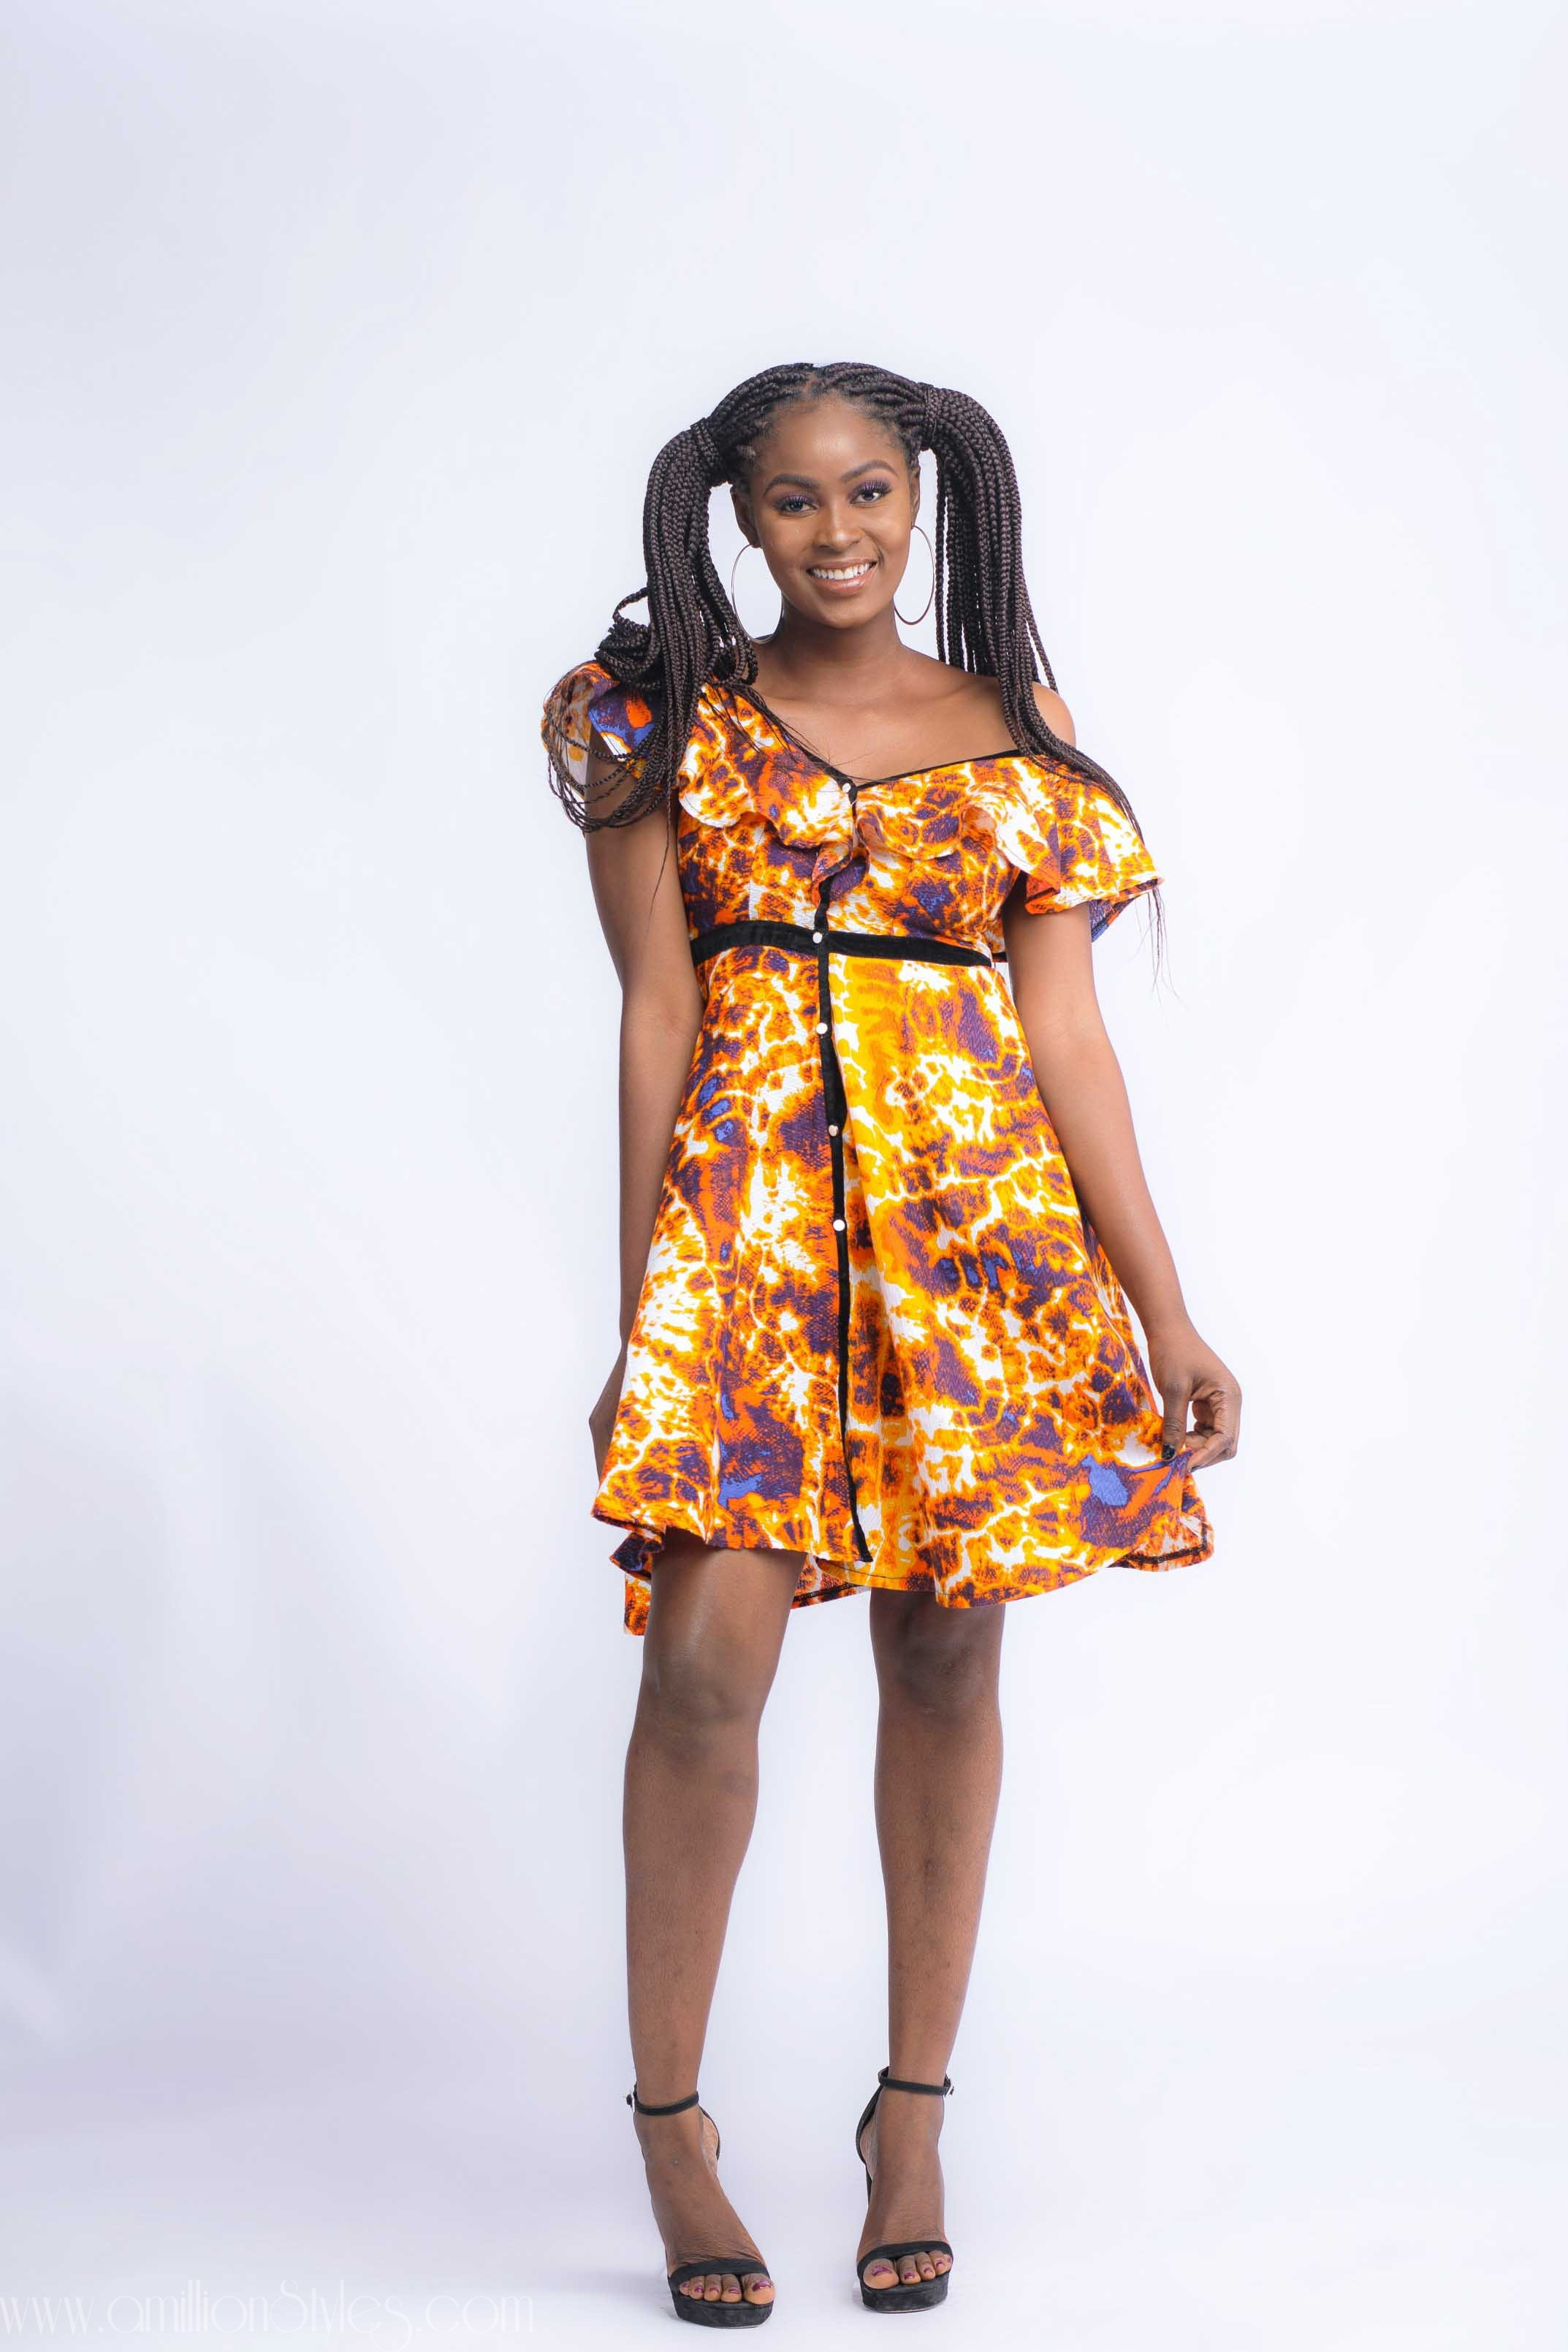 """Comedian Bovi's Wife Kristal Ugboma, Debuts With """"Good Girl Code"""" Collection"""